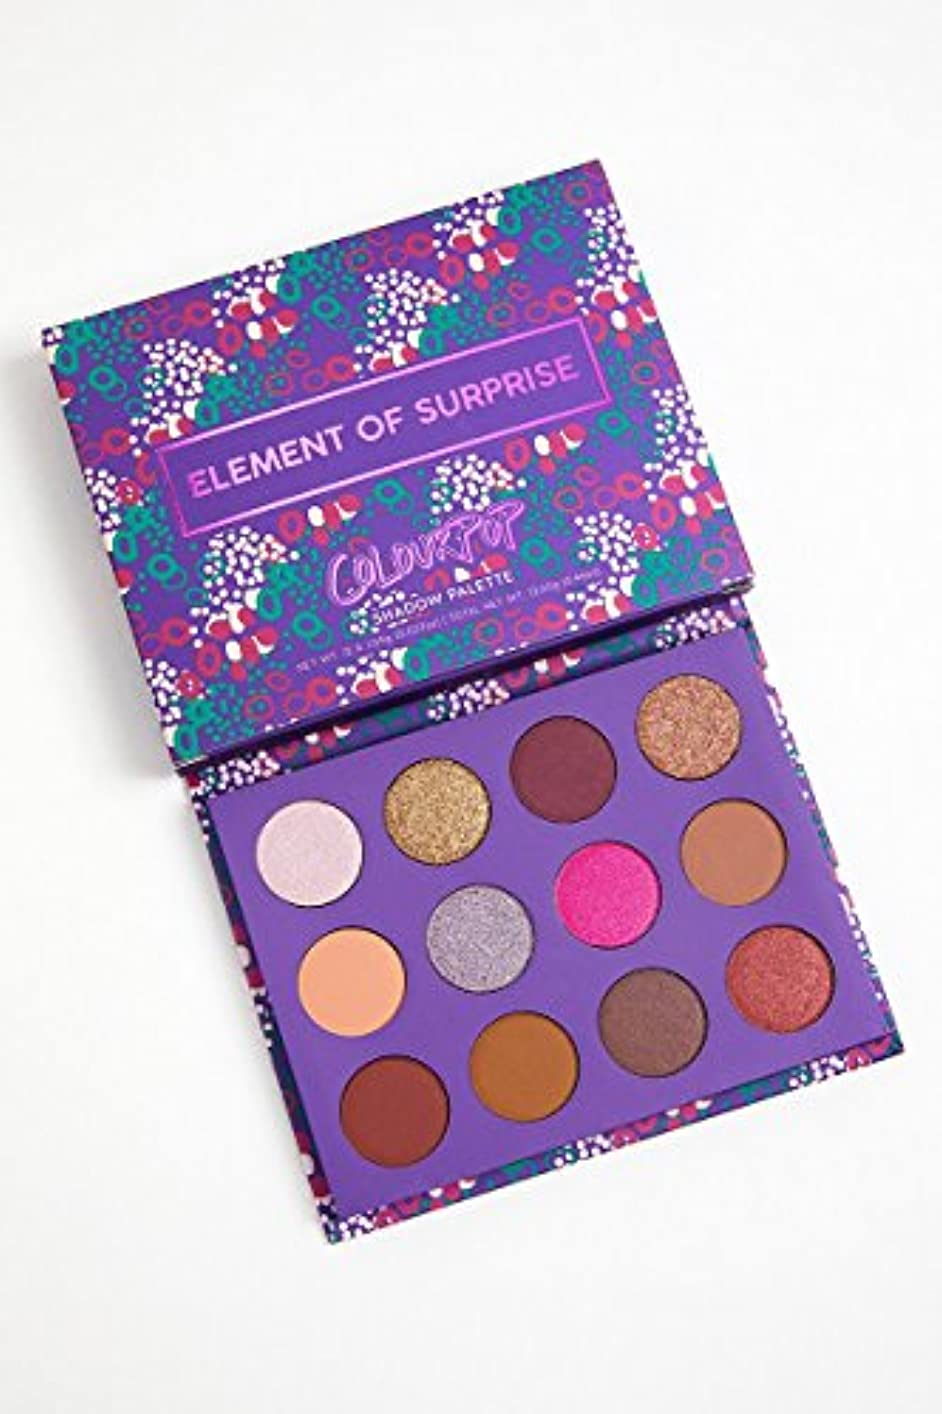 宣言付録保存ColourPop - Pressed Powder Shadow Palette - Element of Surprise